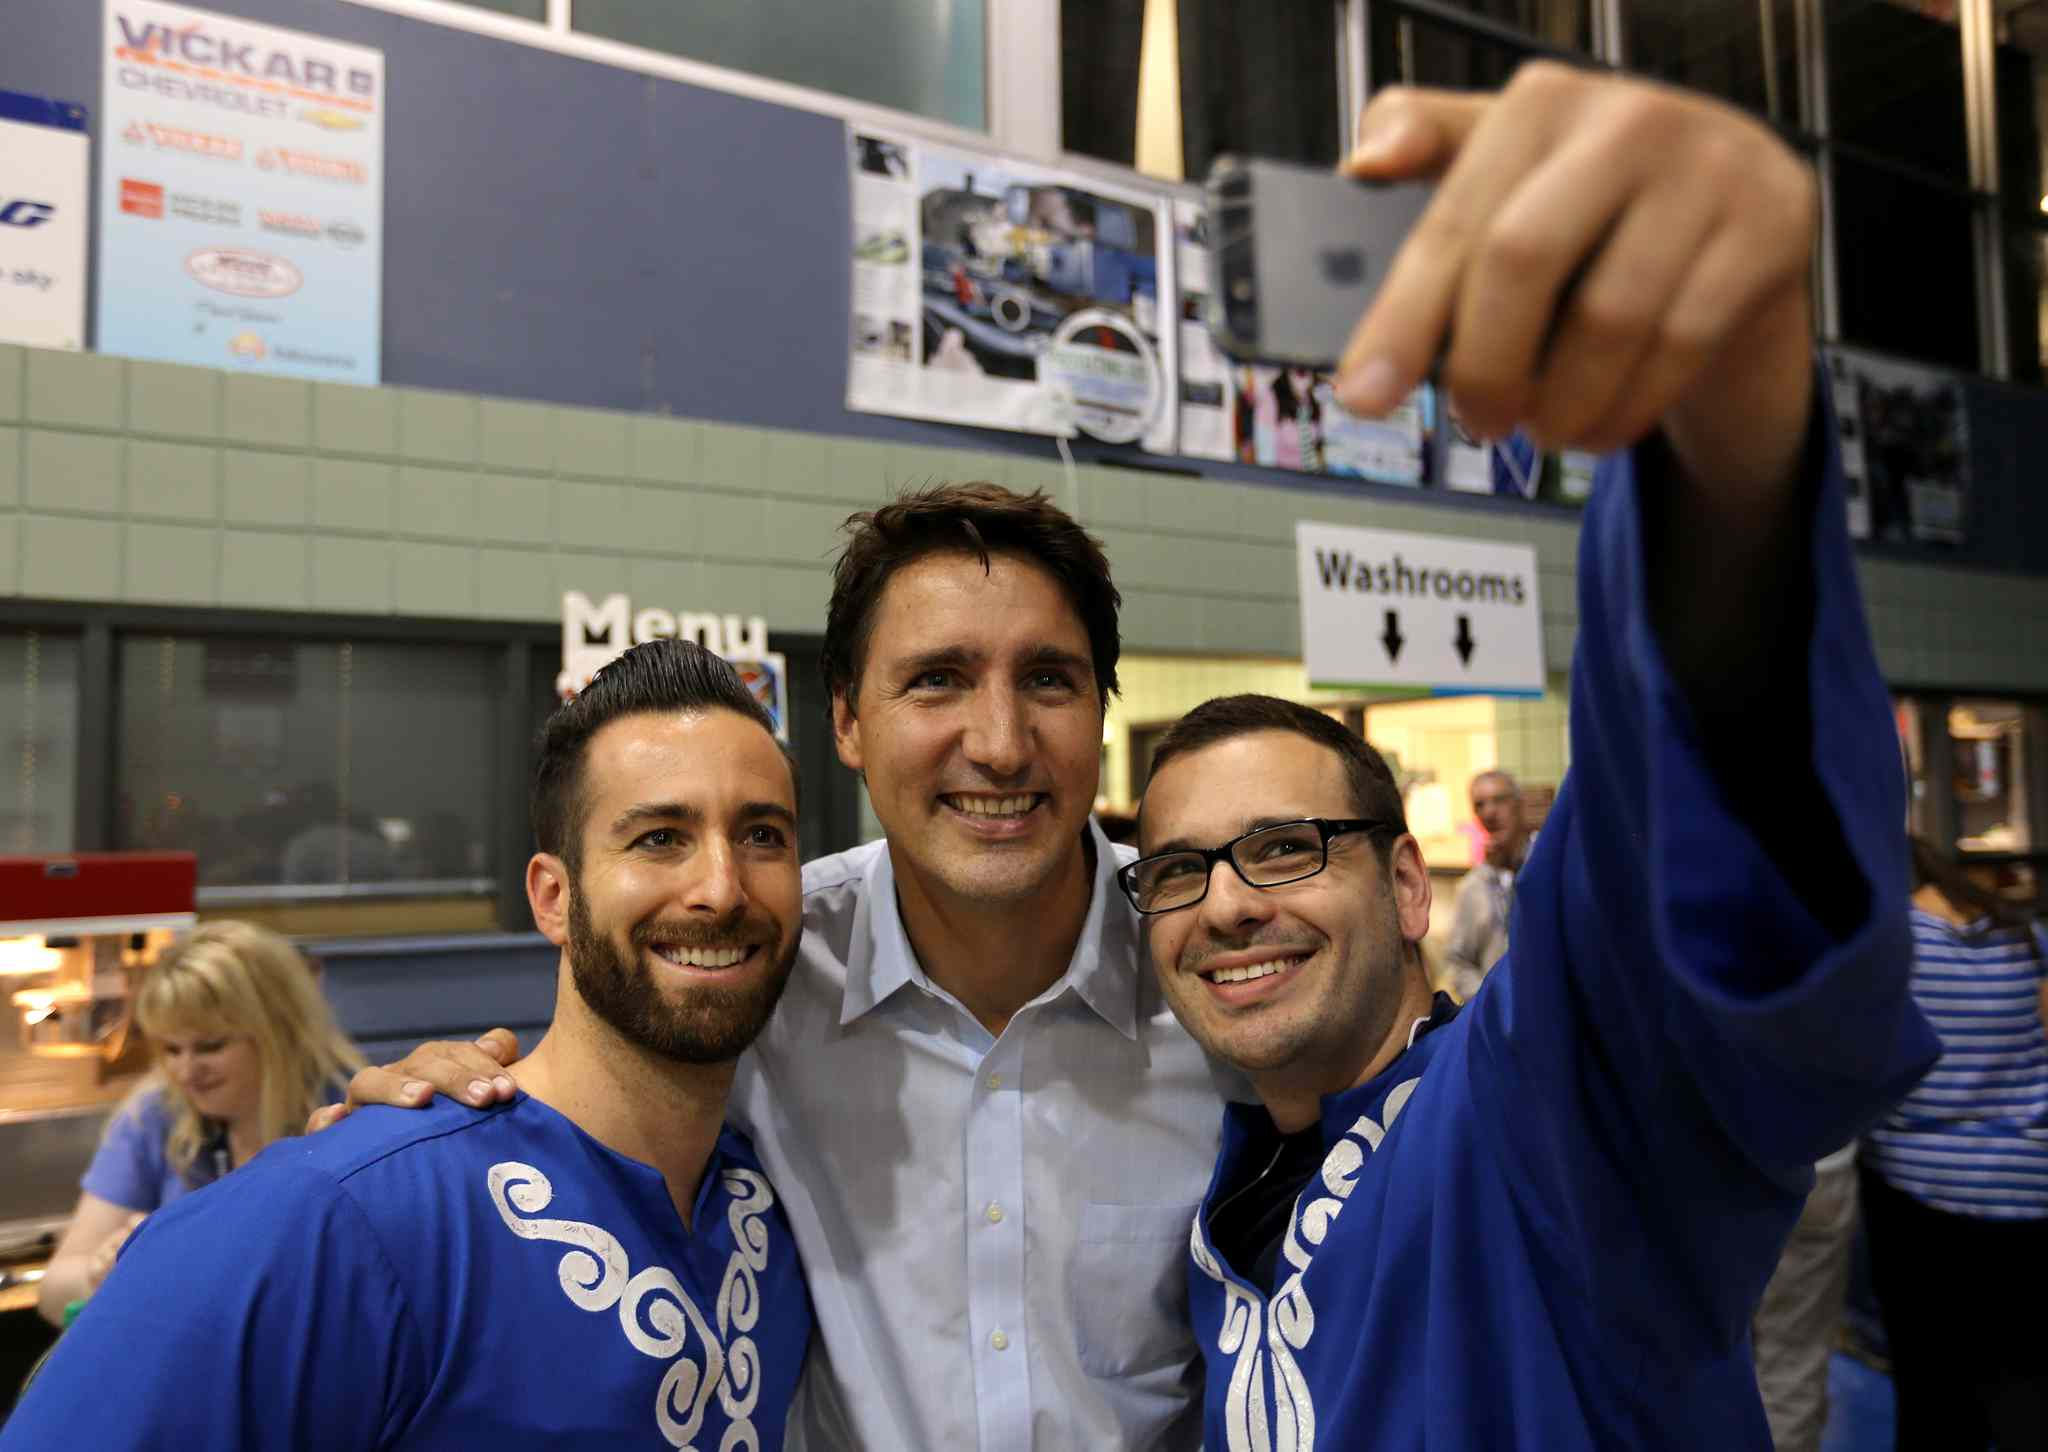 Liberal Party of Canada, Justin Trudeau, middle, poses for a selfie with dancers at the Israeli Folklorama Pavillion, Friday, August 15, 2014.